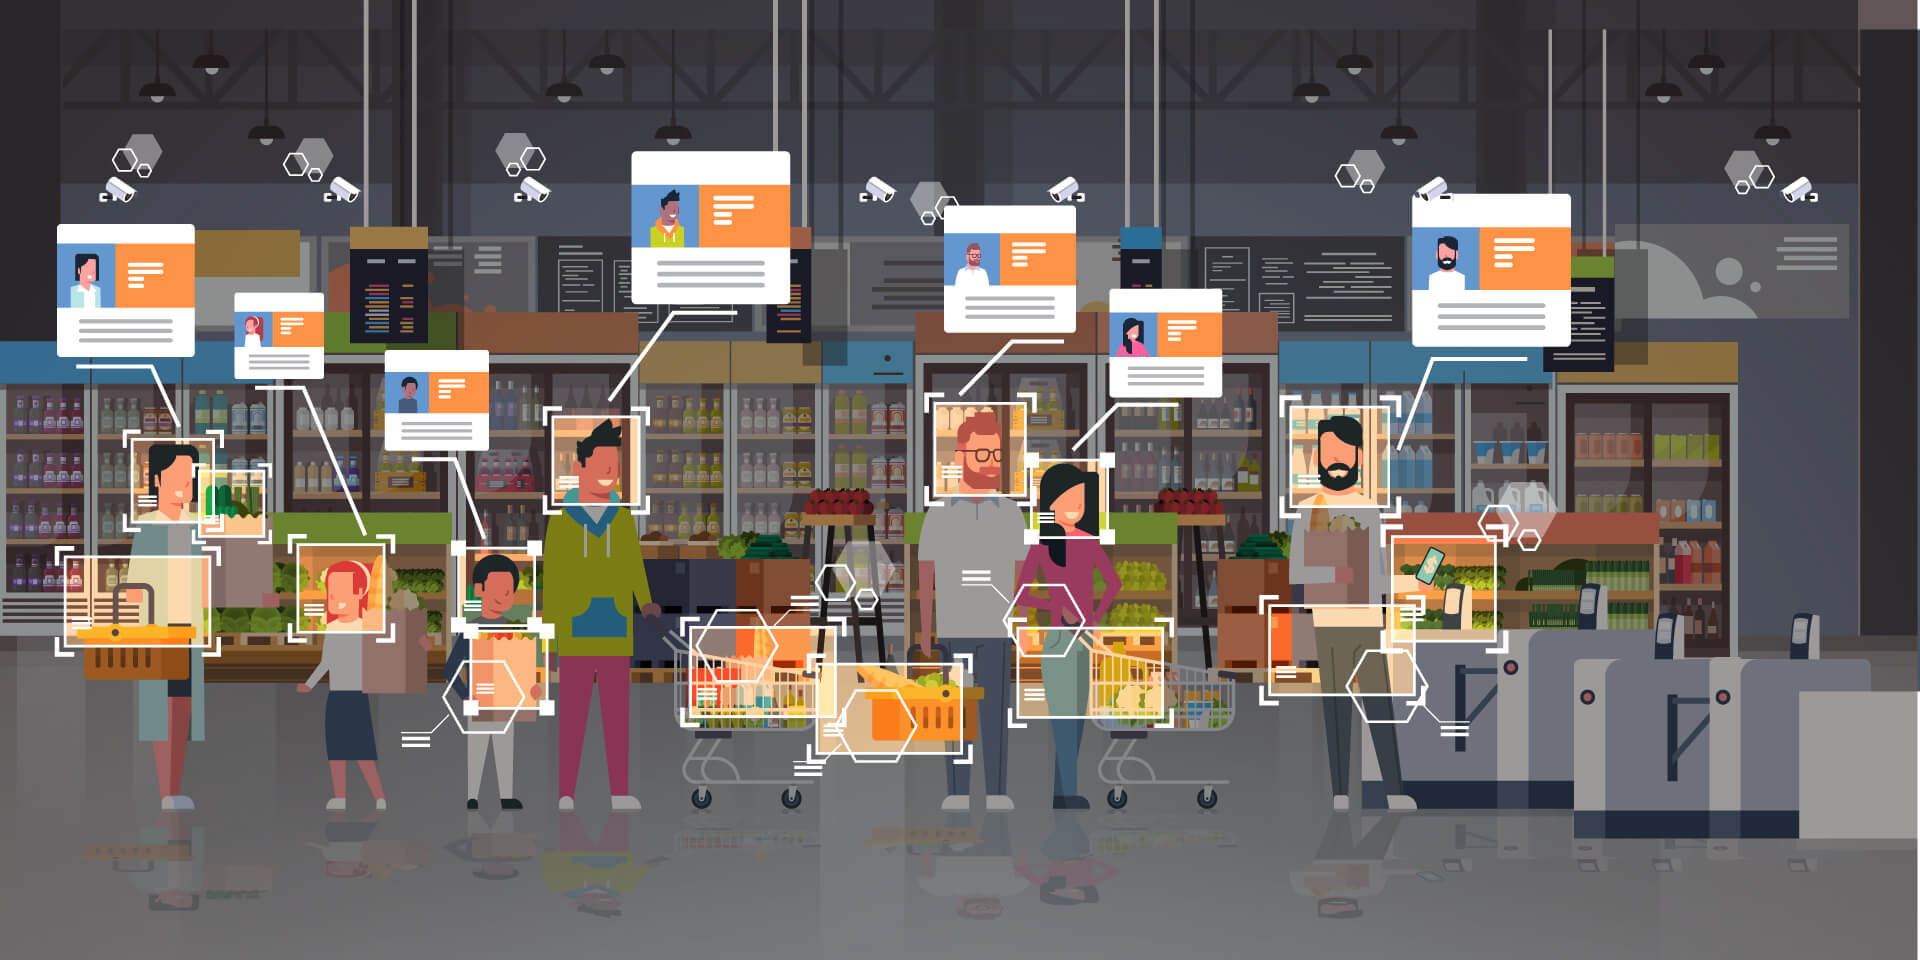 How retailers use data to improve product offerings and customer experiences